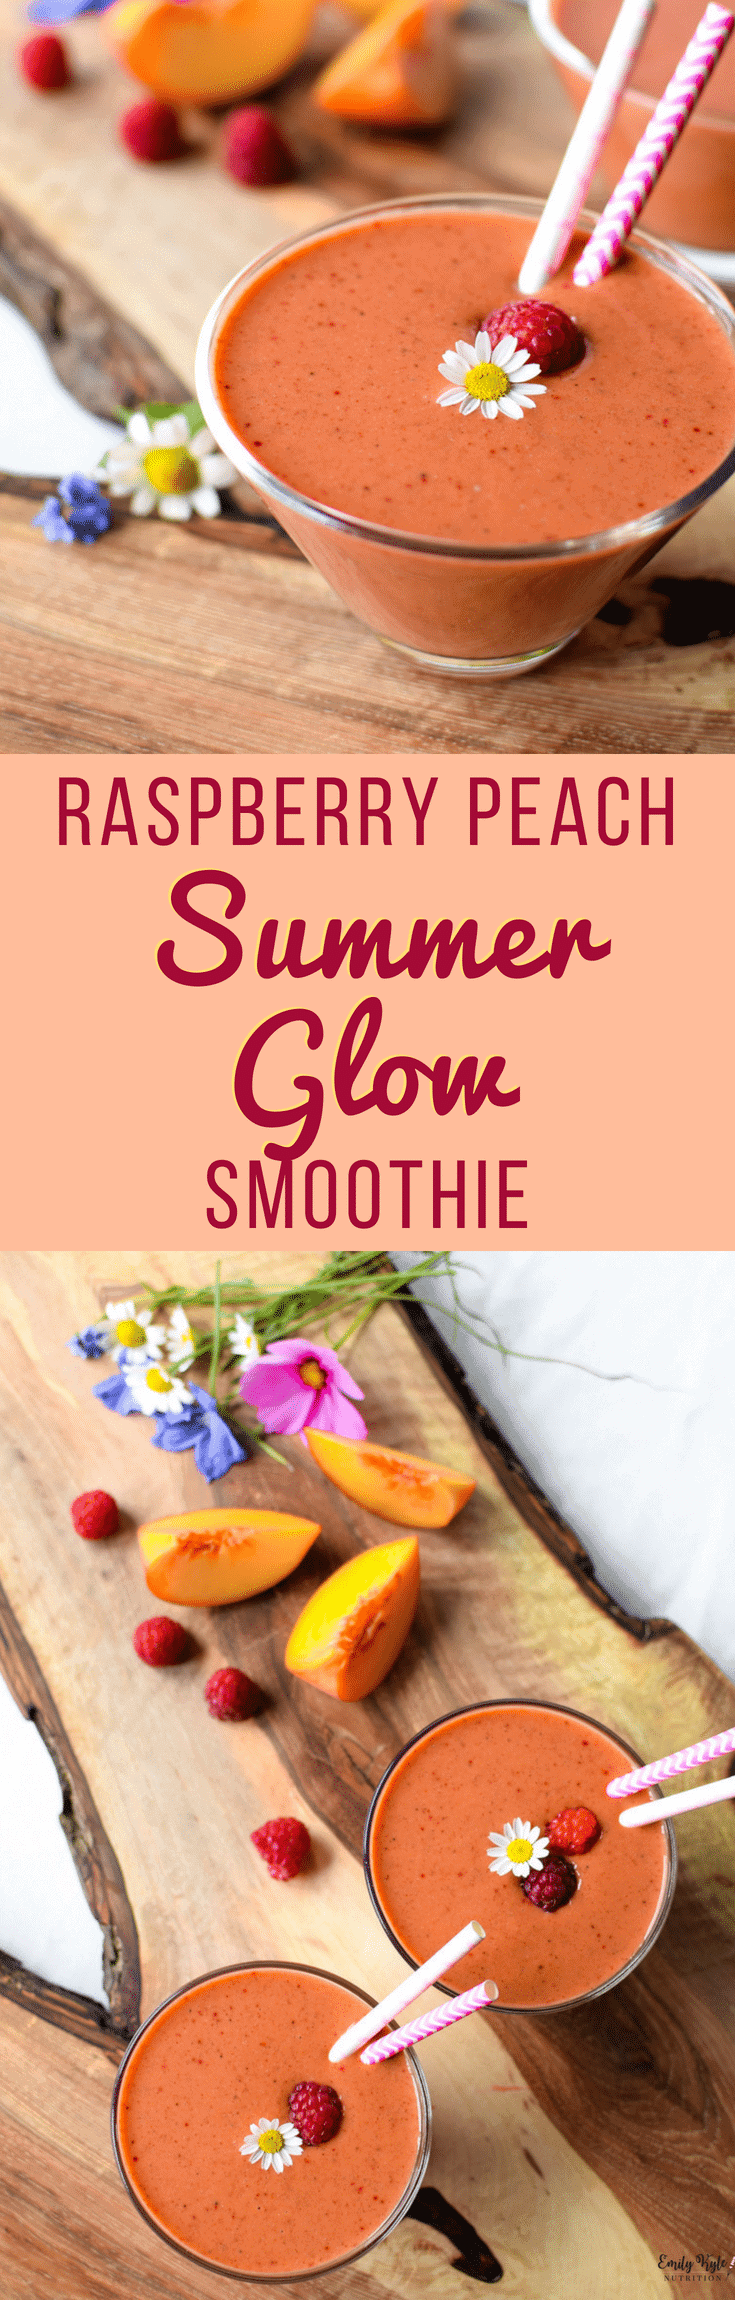 Nourish your body with summers most delicious fresh fruit in this easy to make Raspberry Peach Summer Glow Smoothie!